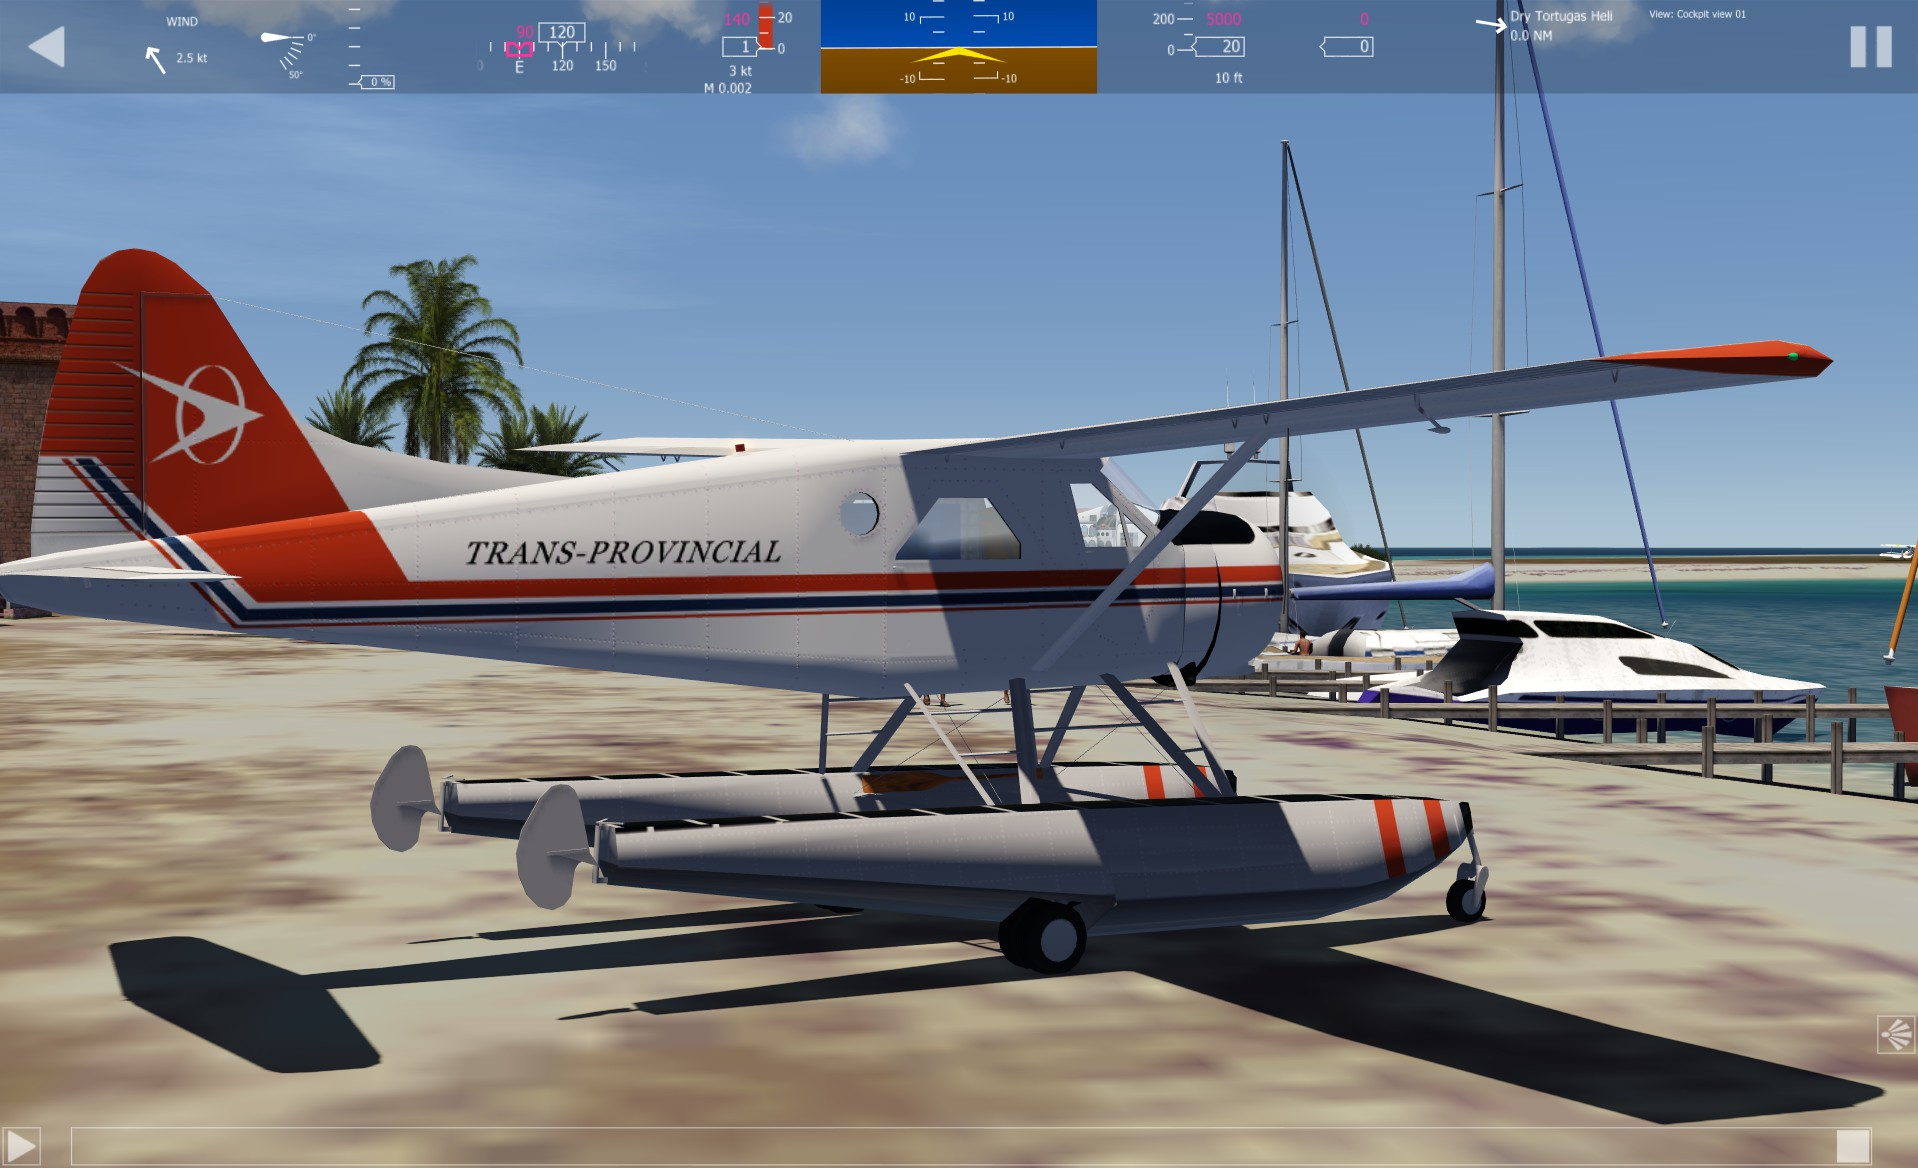 famous bush plane now flying in FS2 - Developer discussions